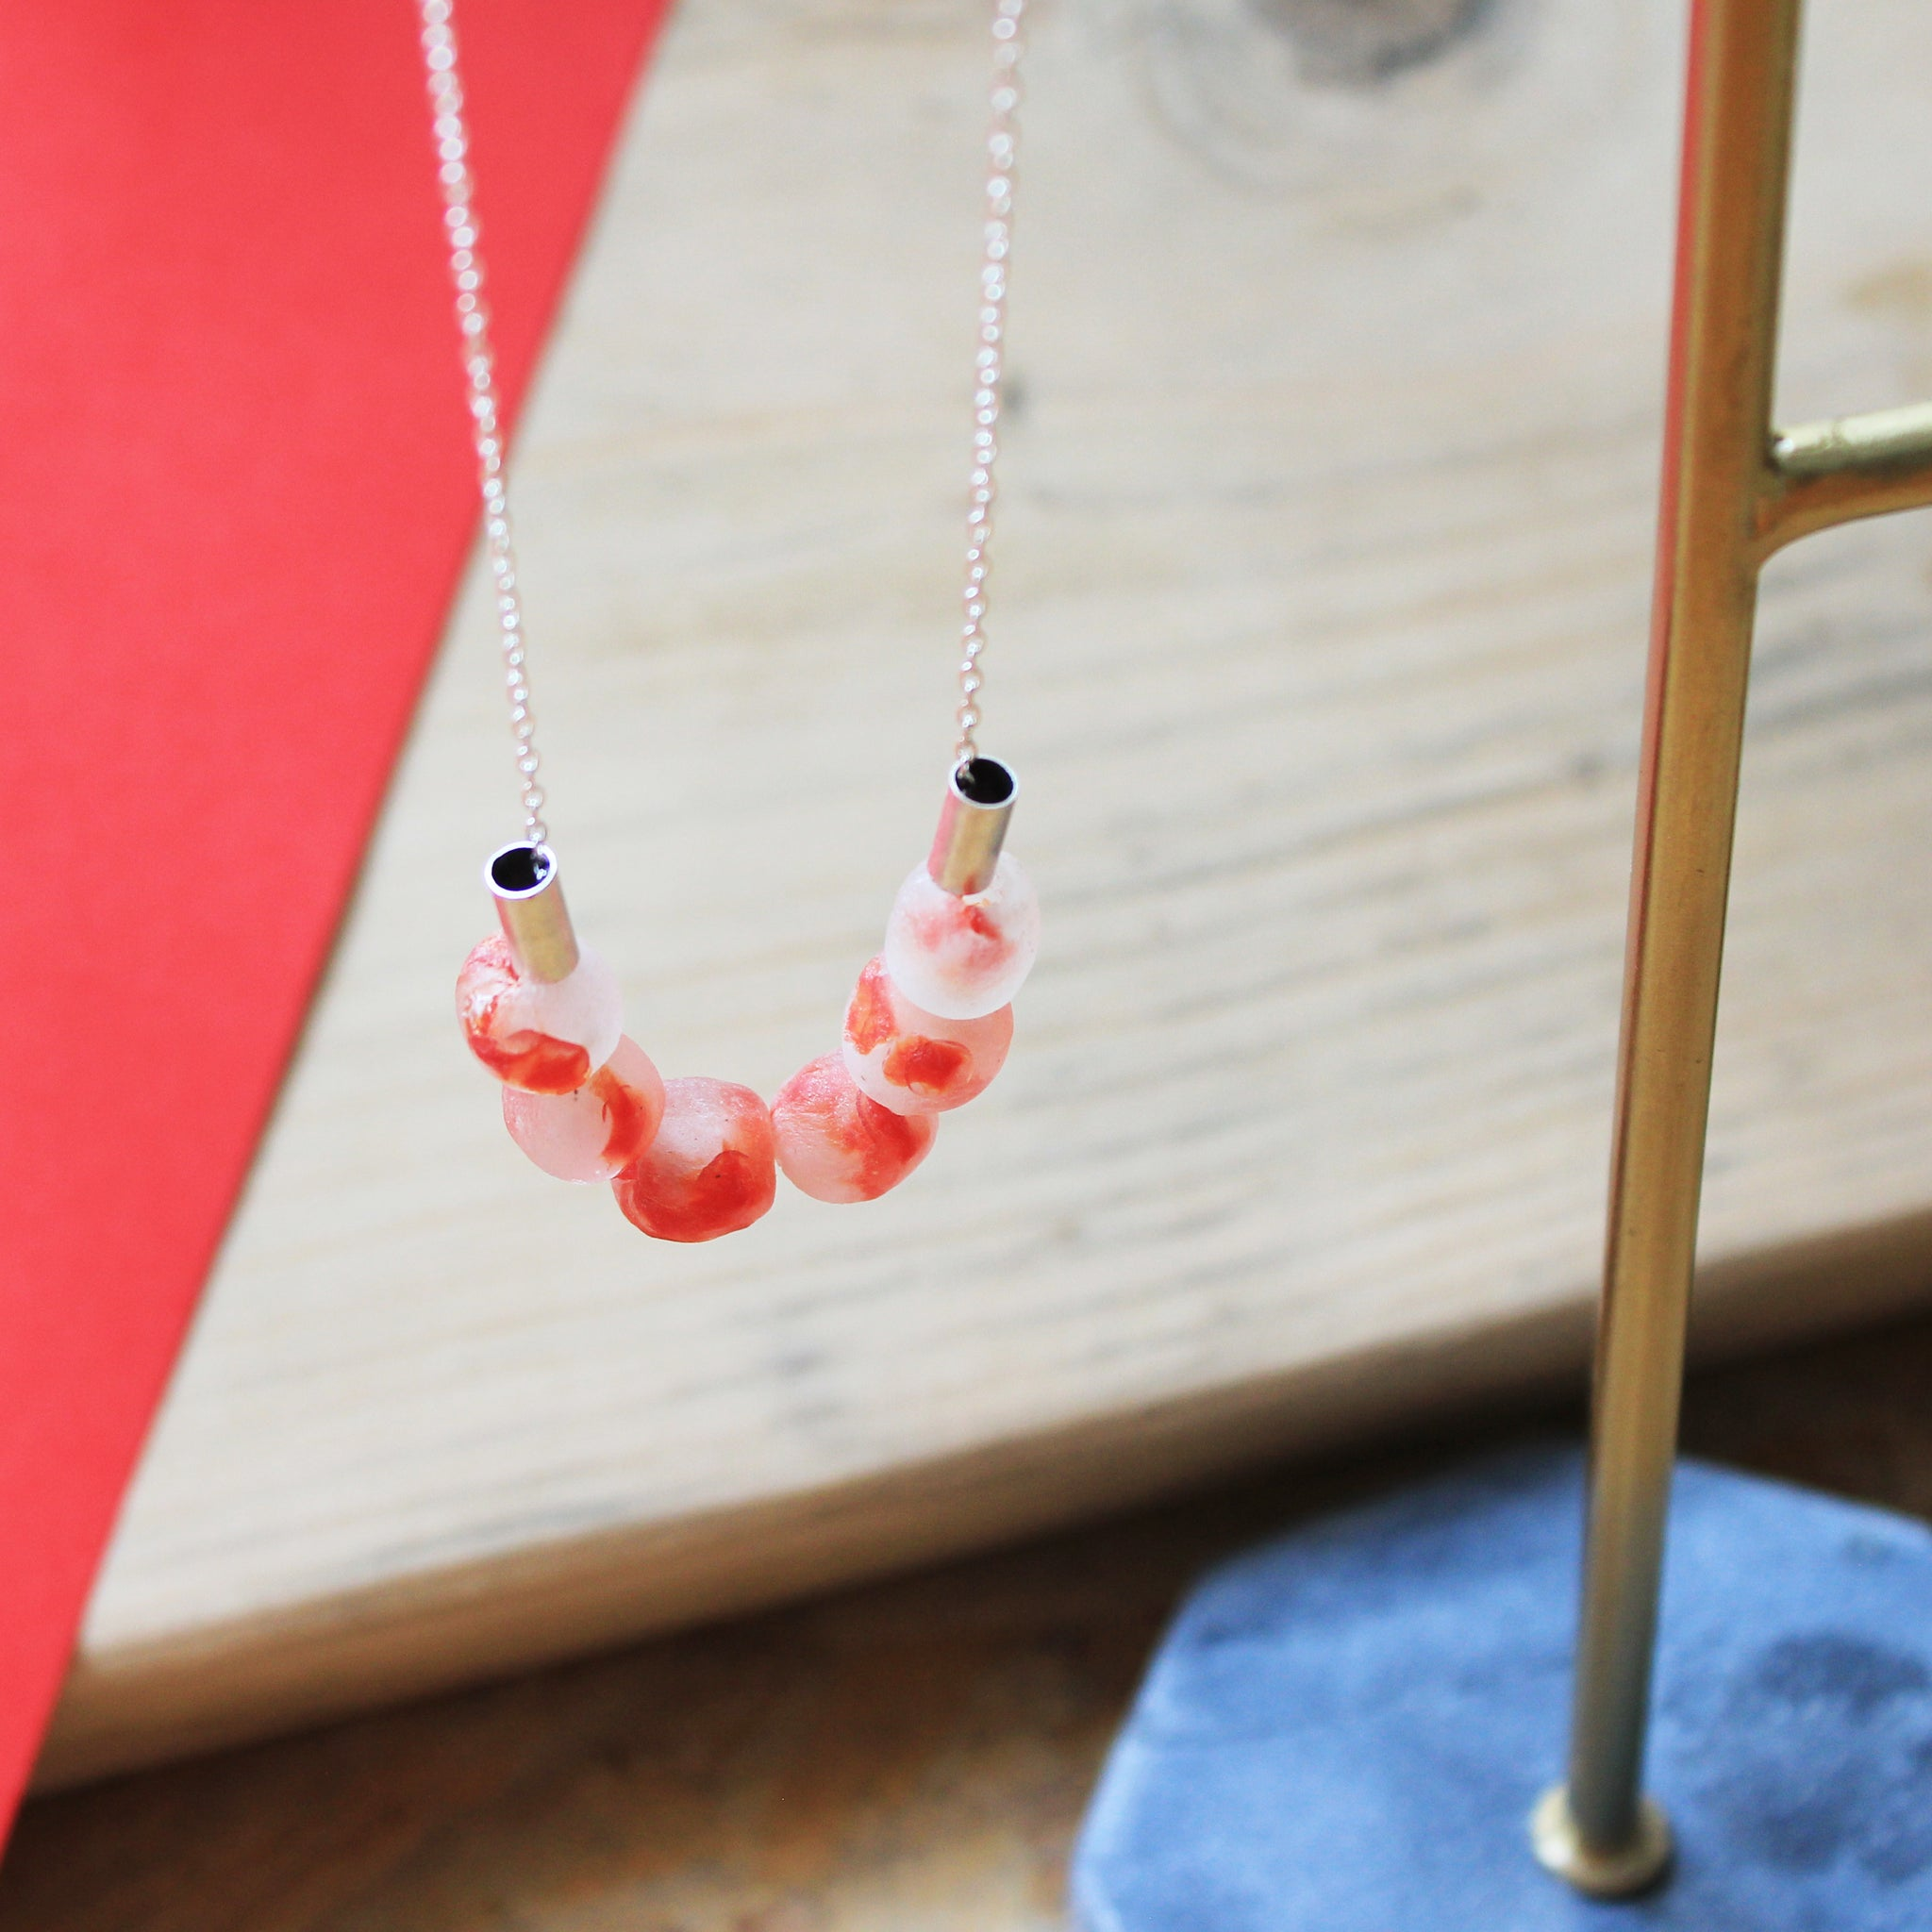 Coral look stylish, minimalist necklace with recycled glass Ghanaian beads